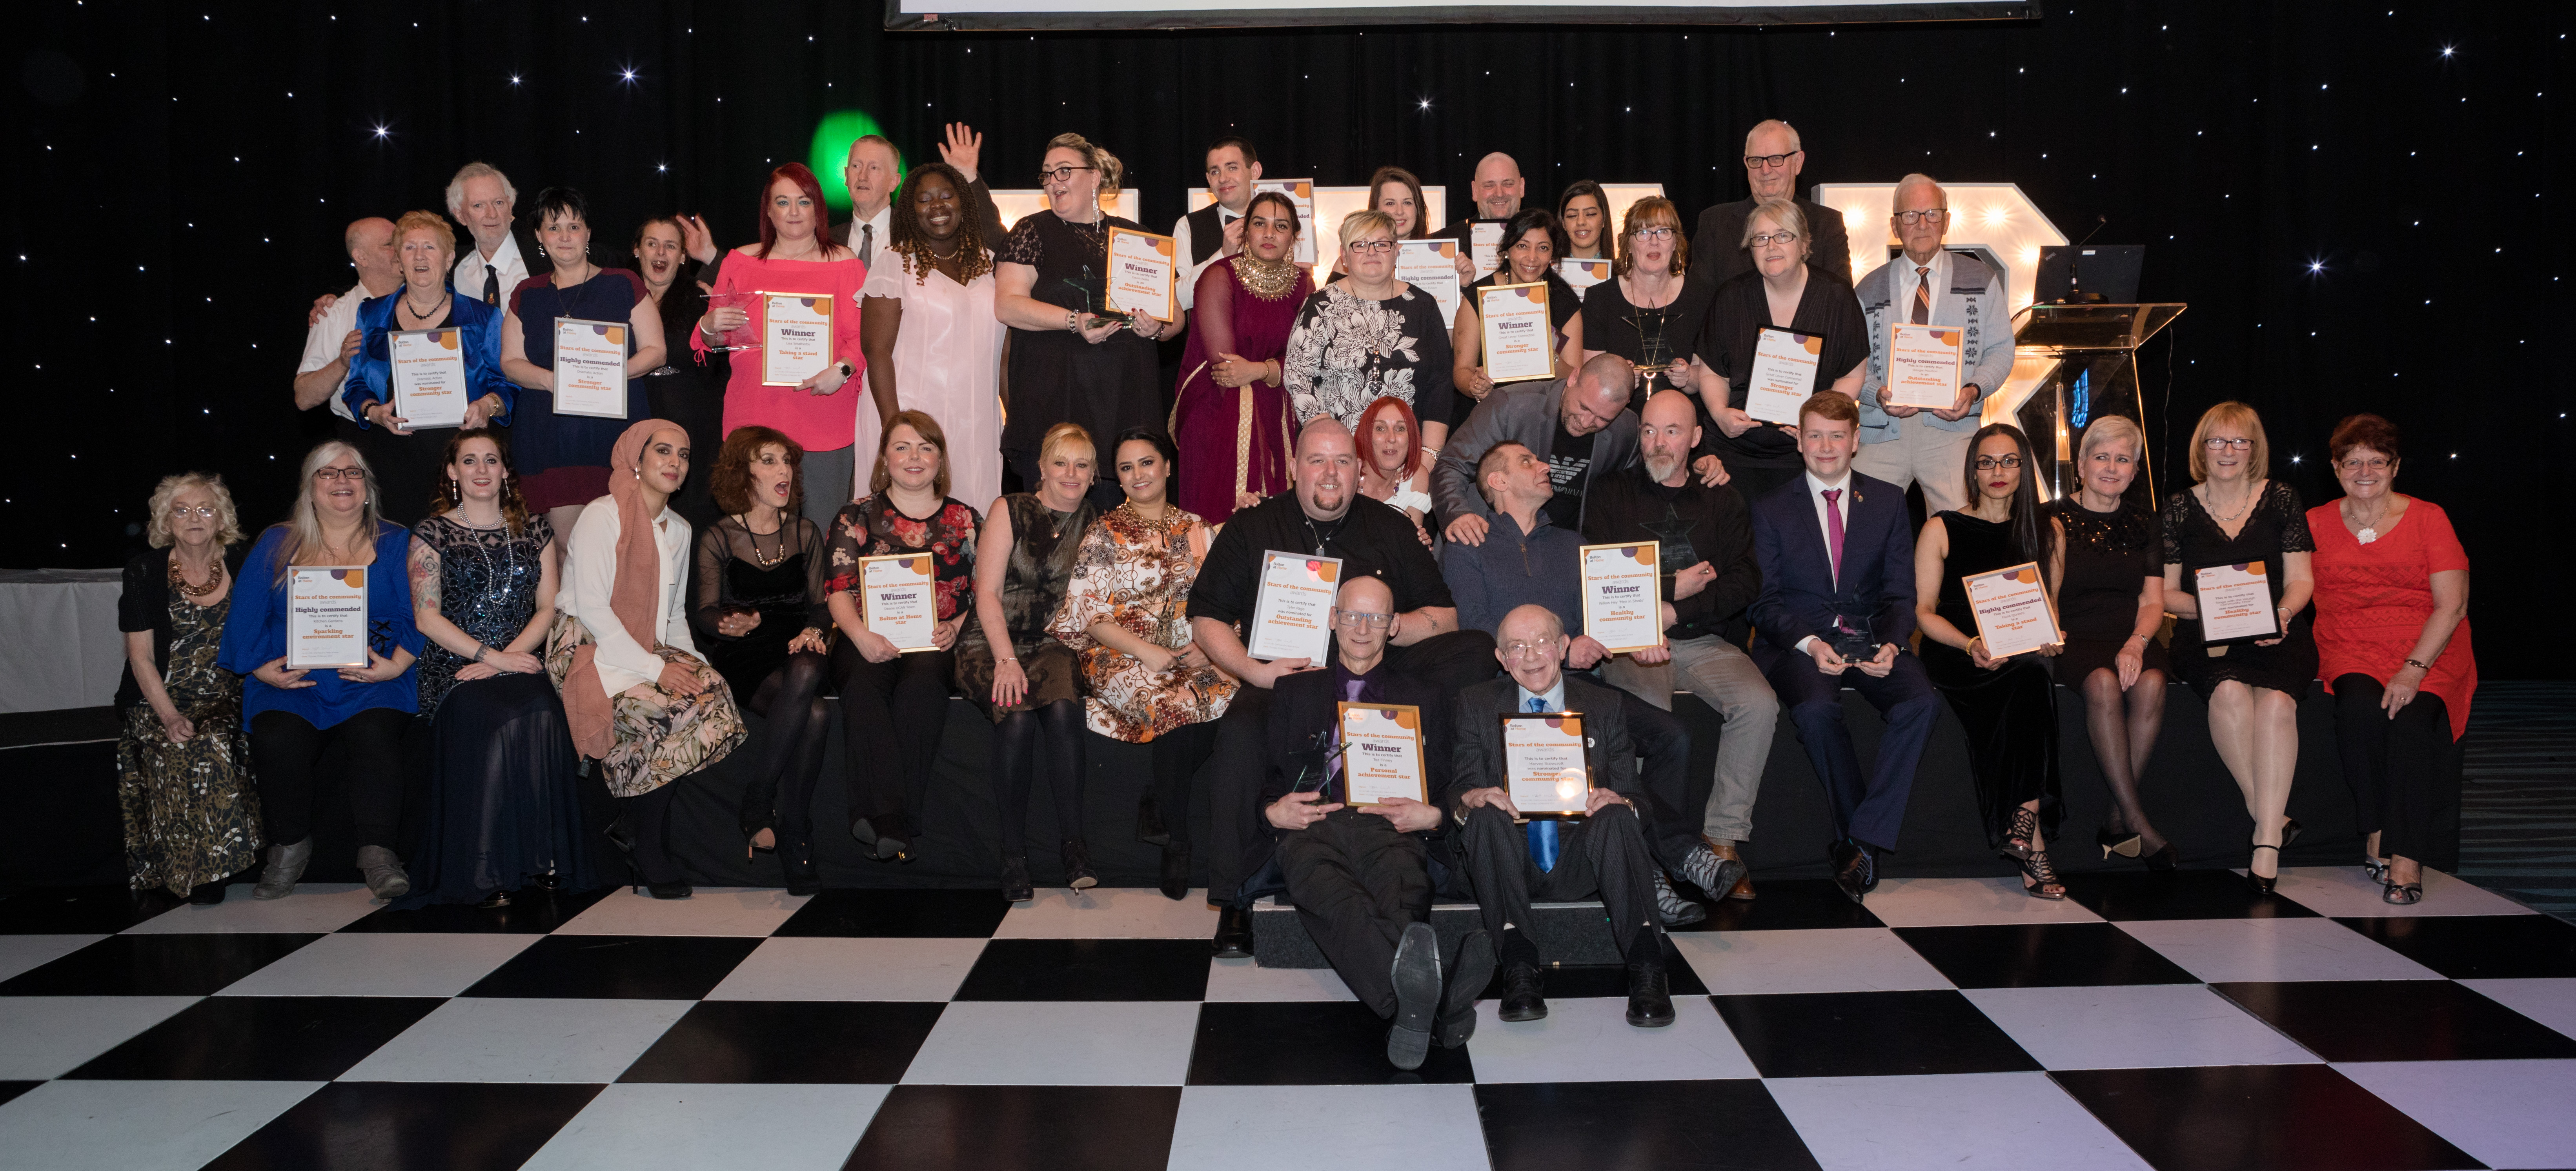 Stars of the community shine on awards night